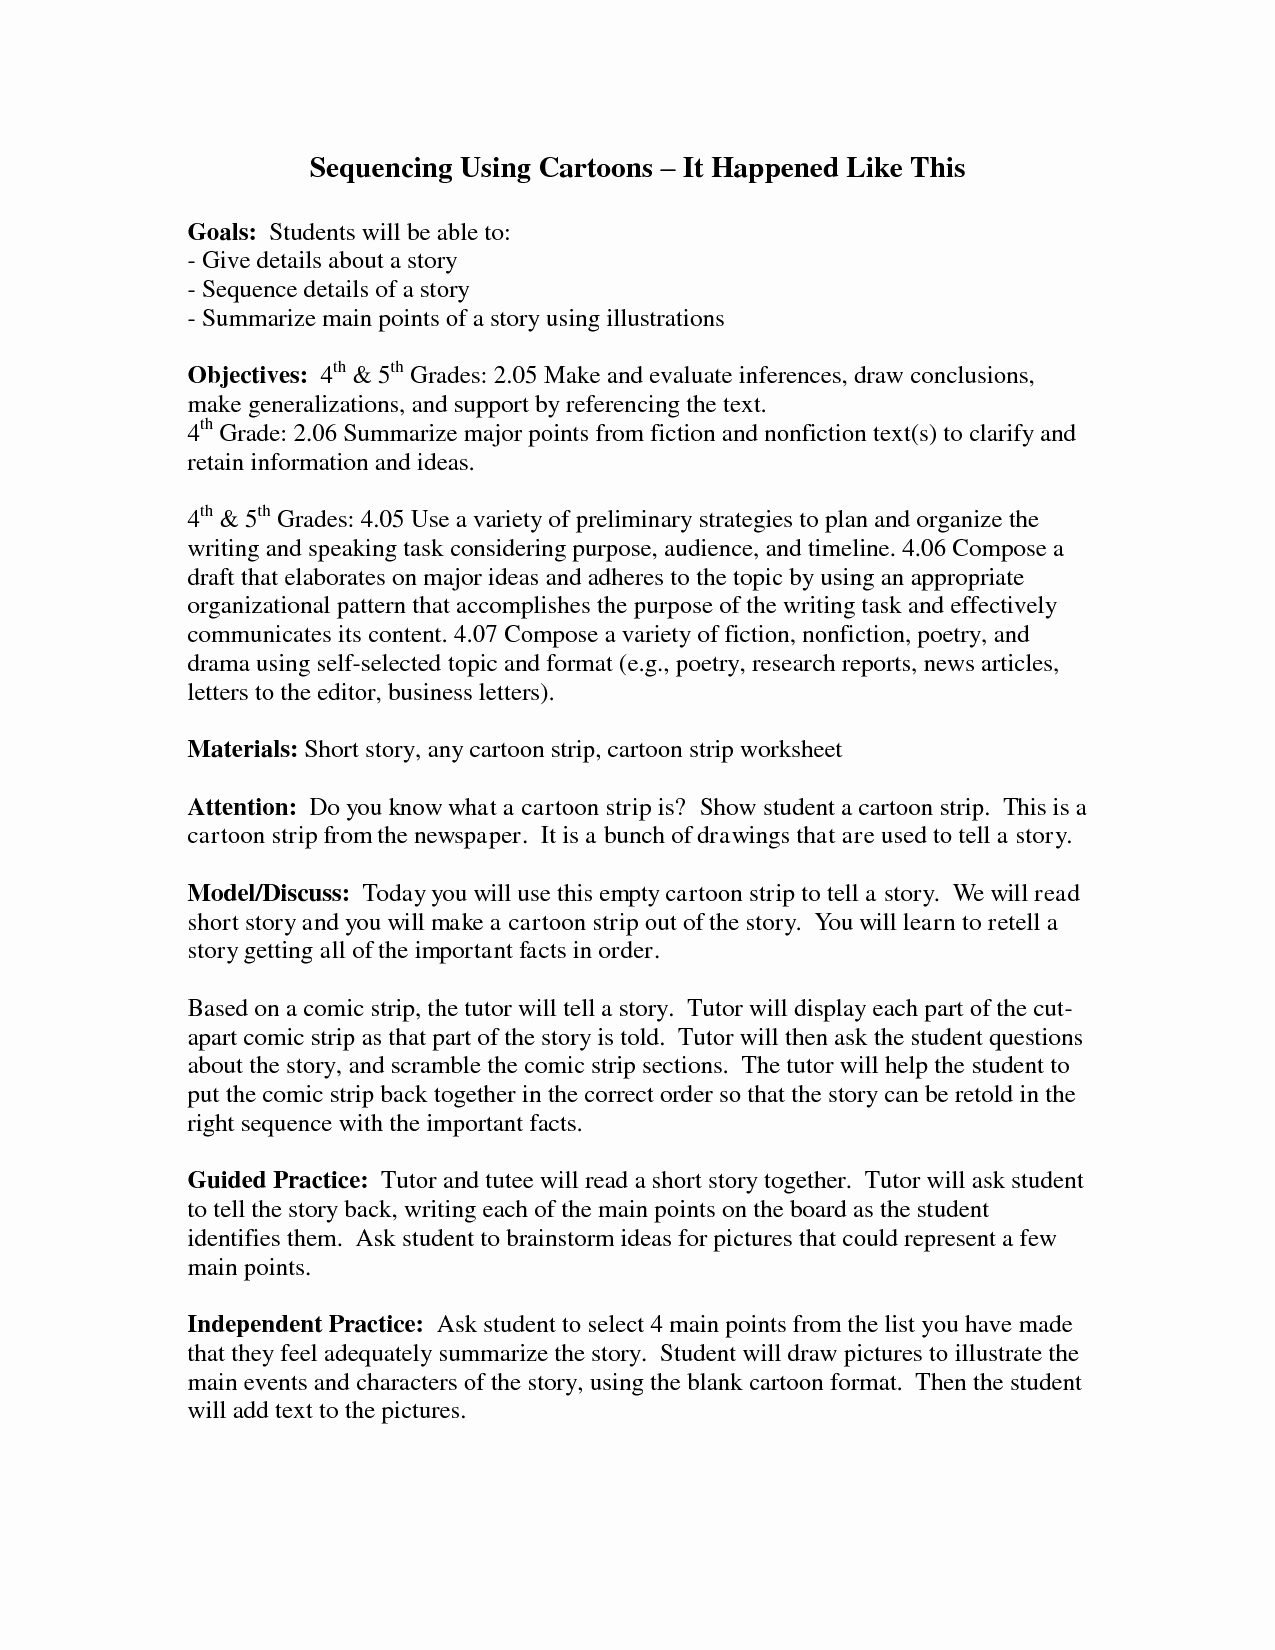 Sequencing Worksheets 5th Grade Unique 14 Best Of Story events Worksheets Story